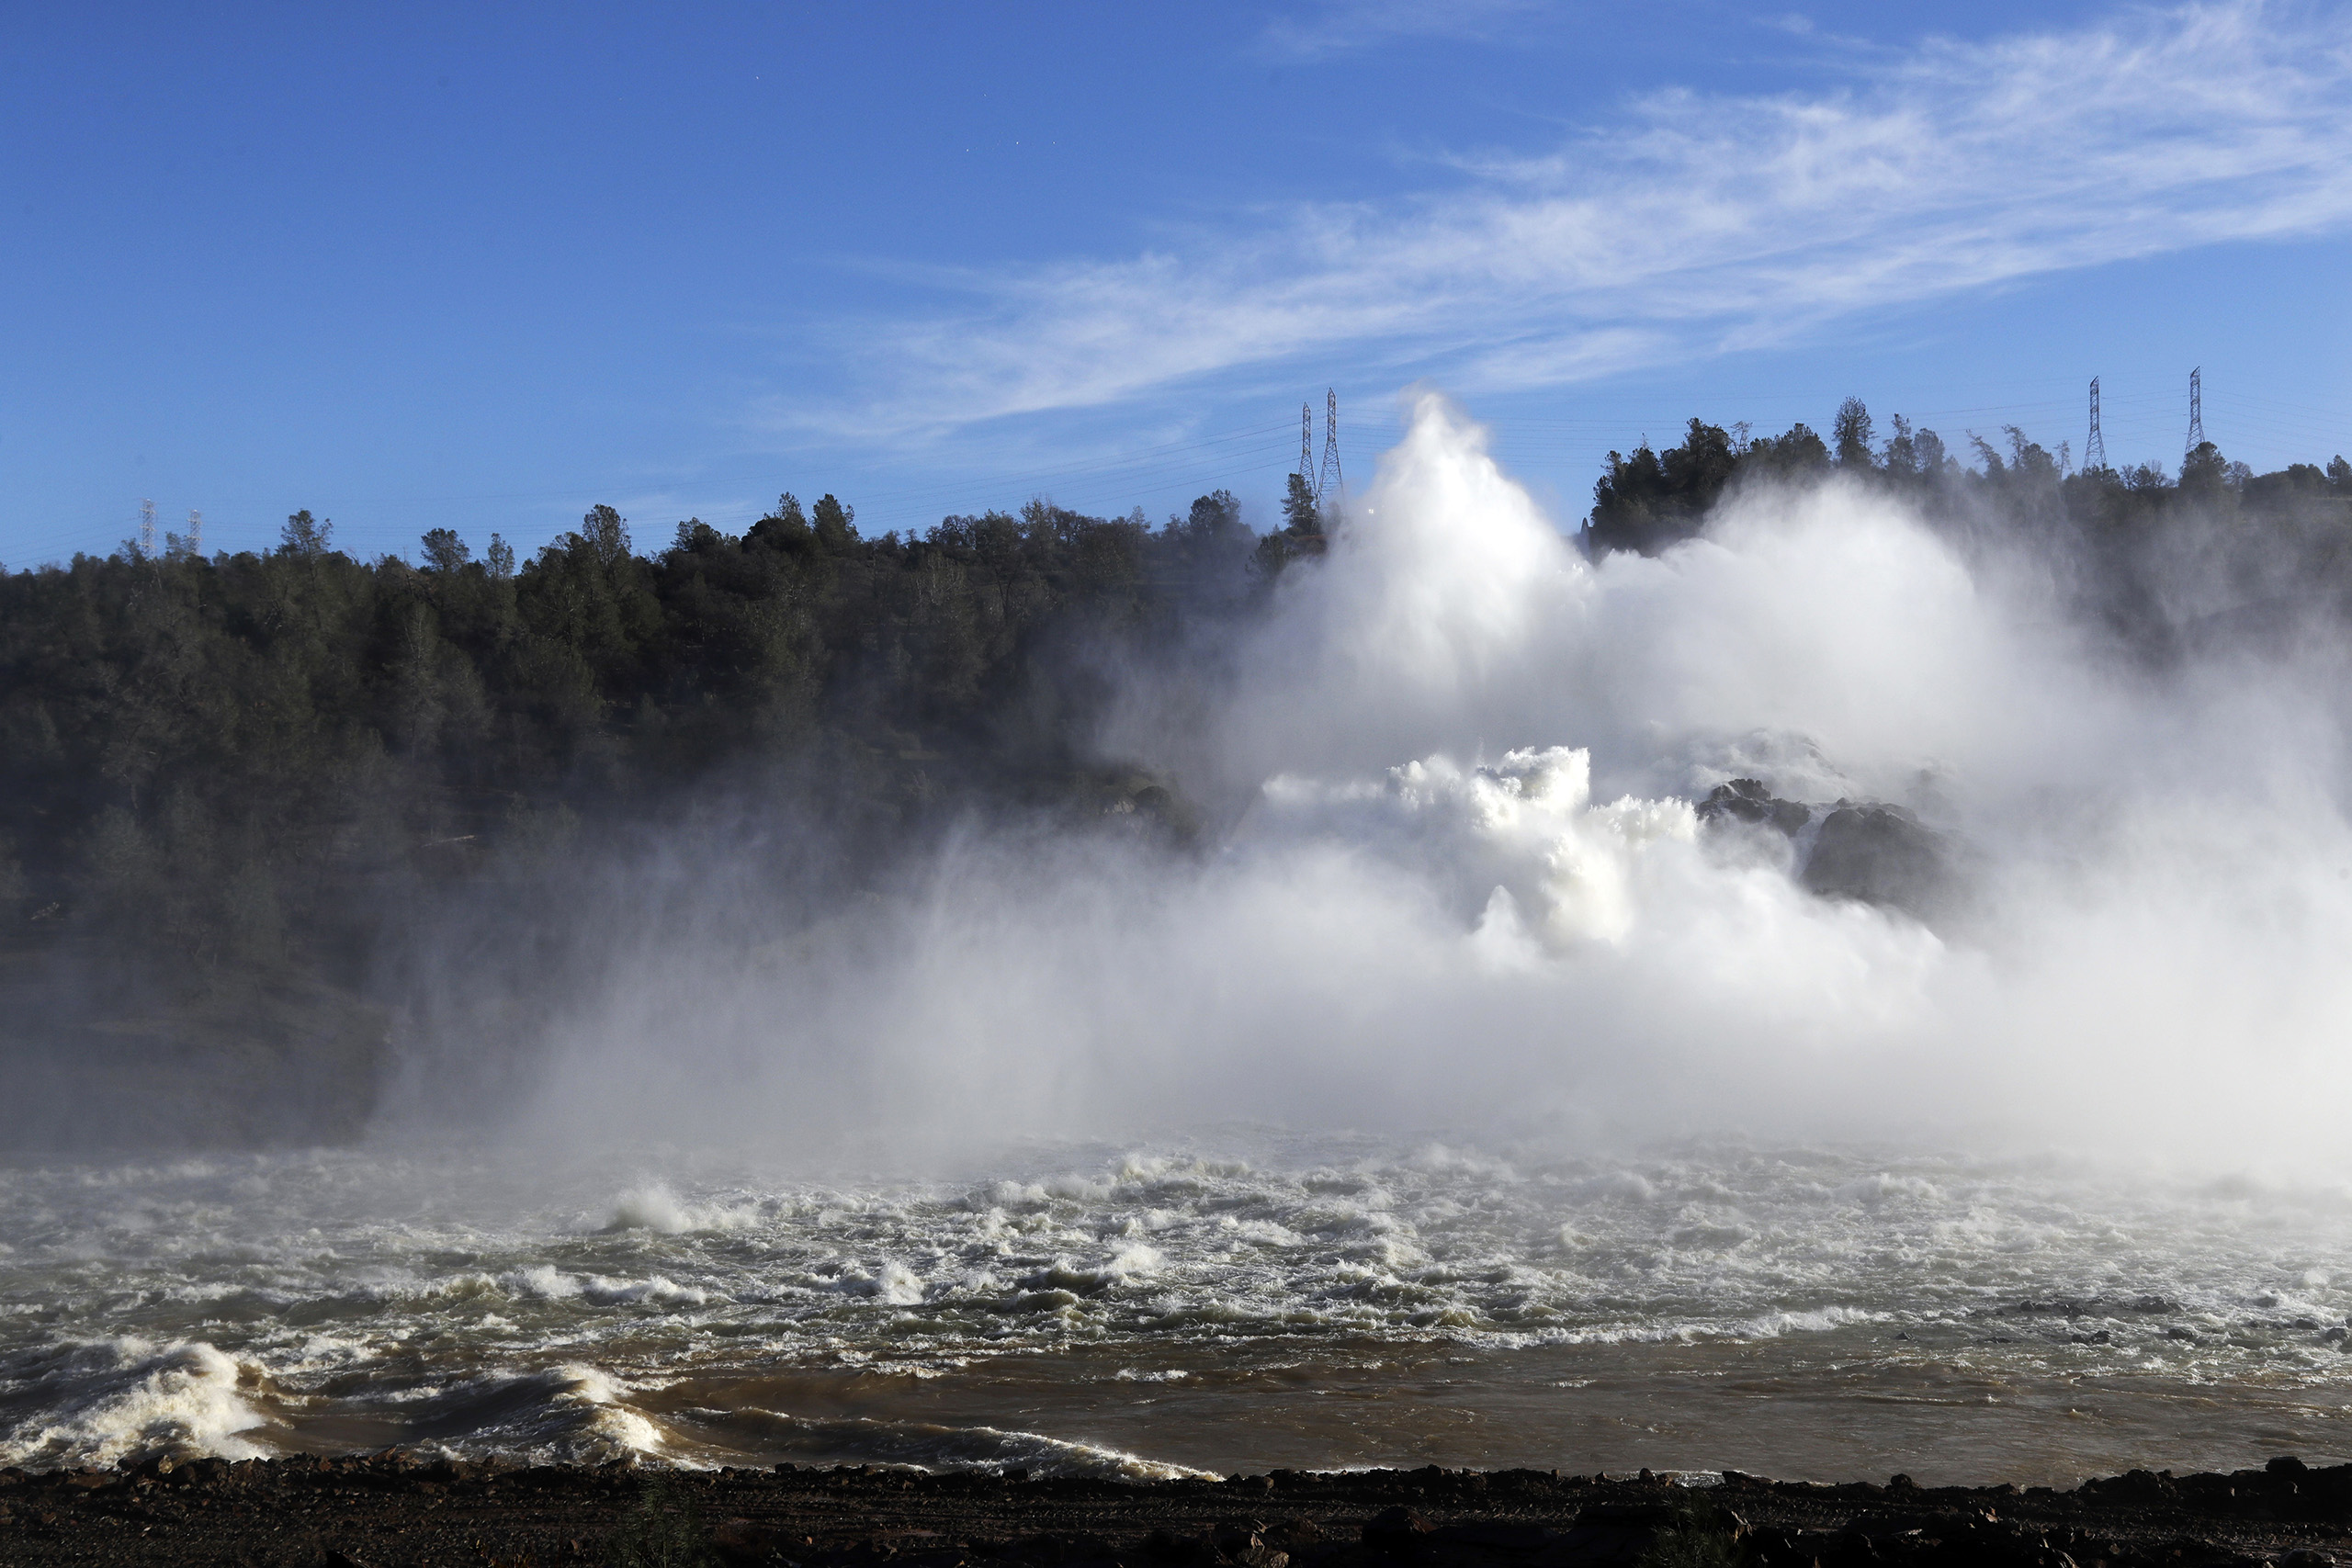 Water gushes from the Oroville Dam's main spillway in Oroville, Calif. on Feb. 14, 2017.